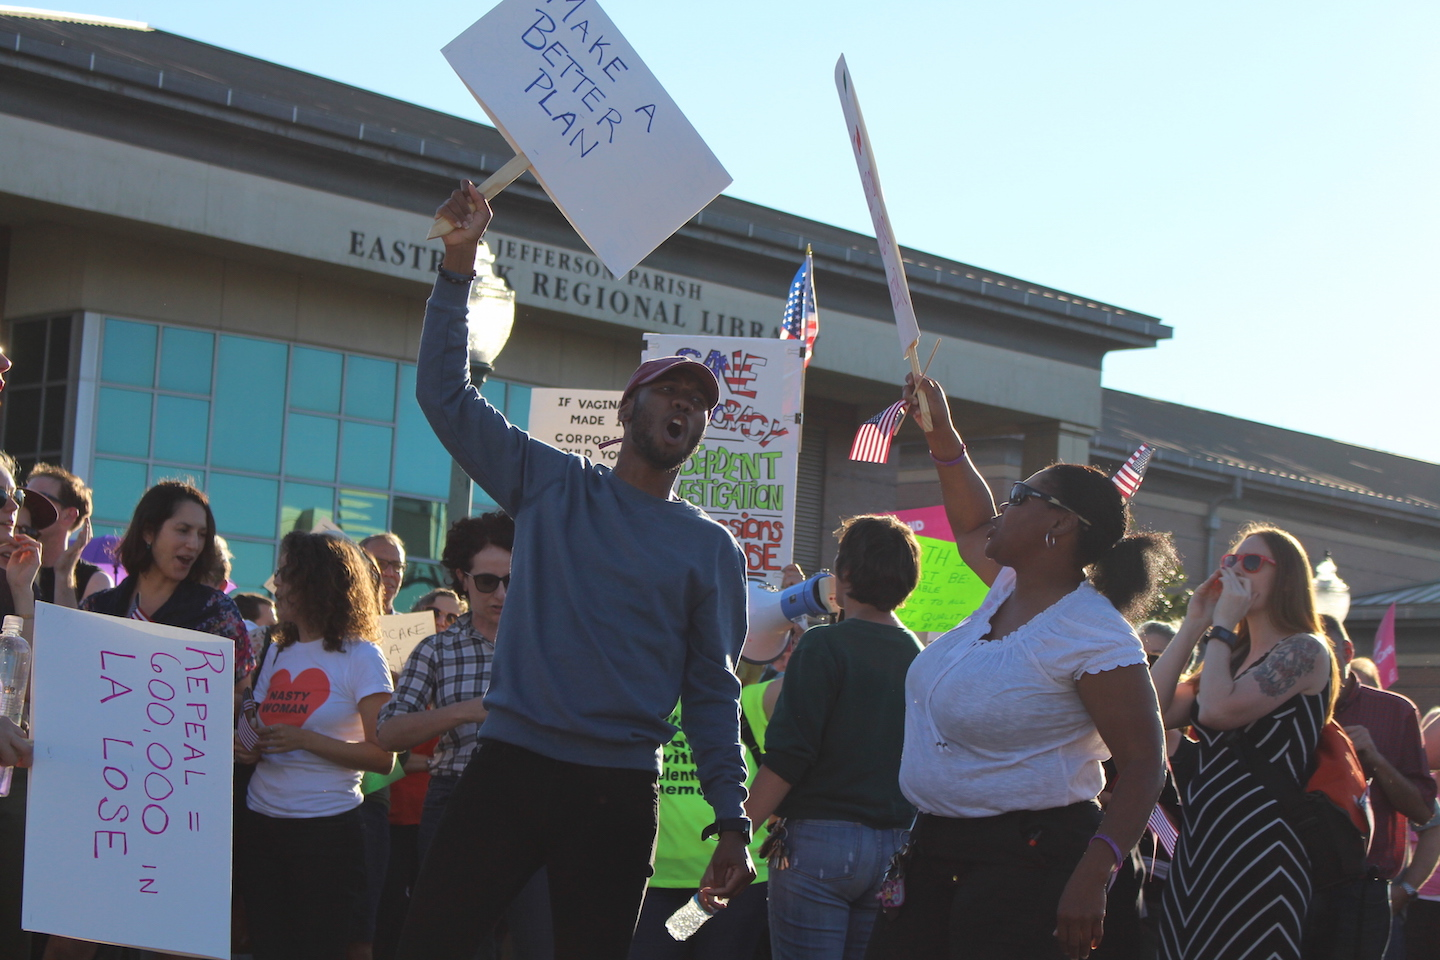 Charles Eden and Jumal Otis play off of each other with chants as they wait for Sen. Bill Cassidy to leave the town hall meeting. Several dozen people gathered around Jefferson Parish Library to give their testimonials in protest to Sen. Bill Cassidy's town hall on Feb. 23, 2017.